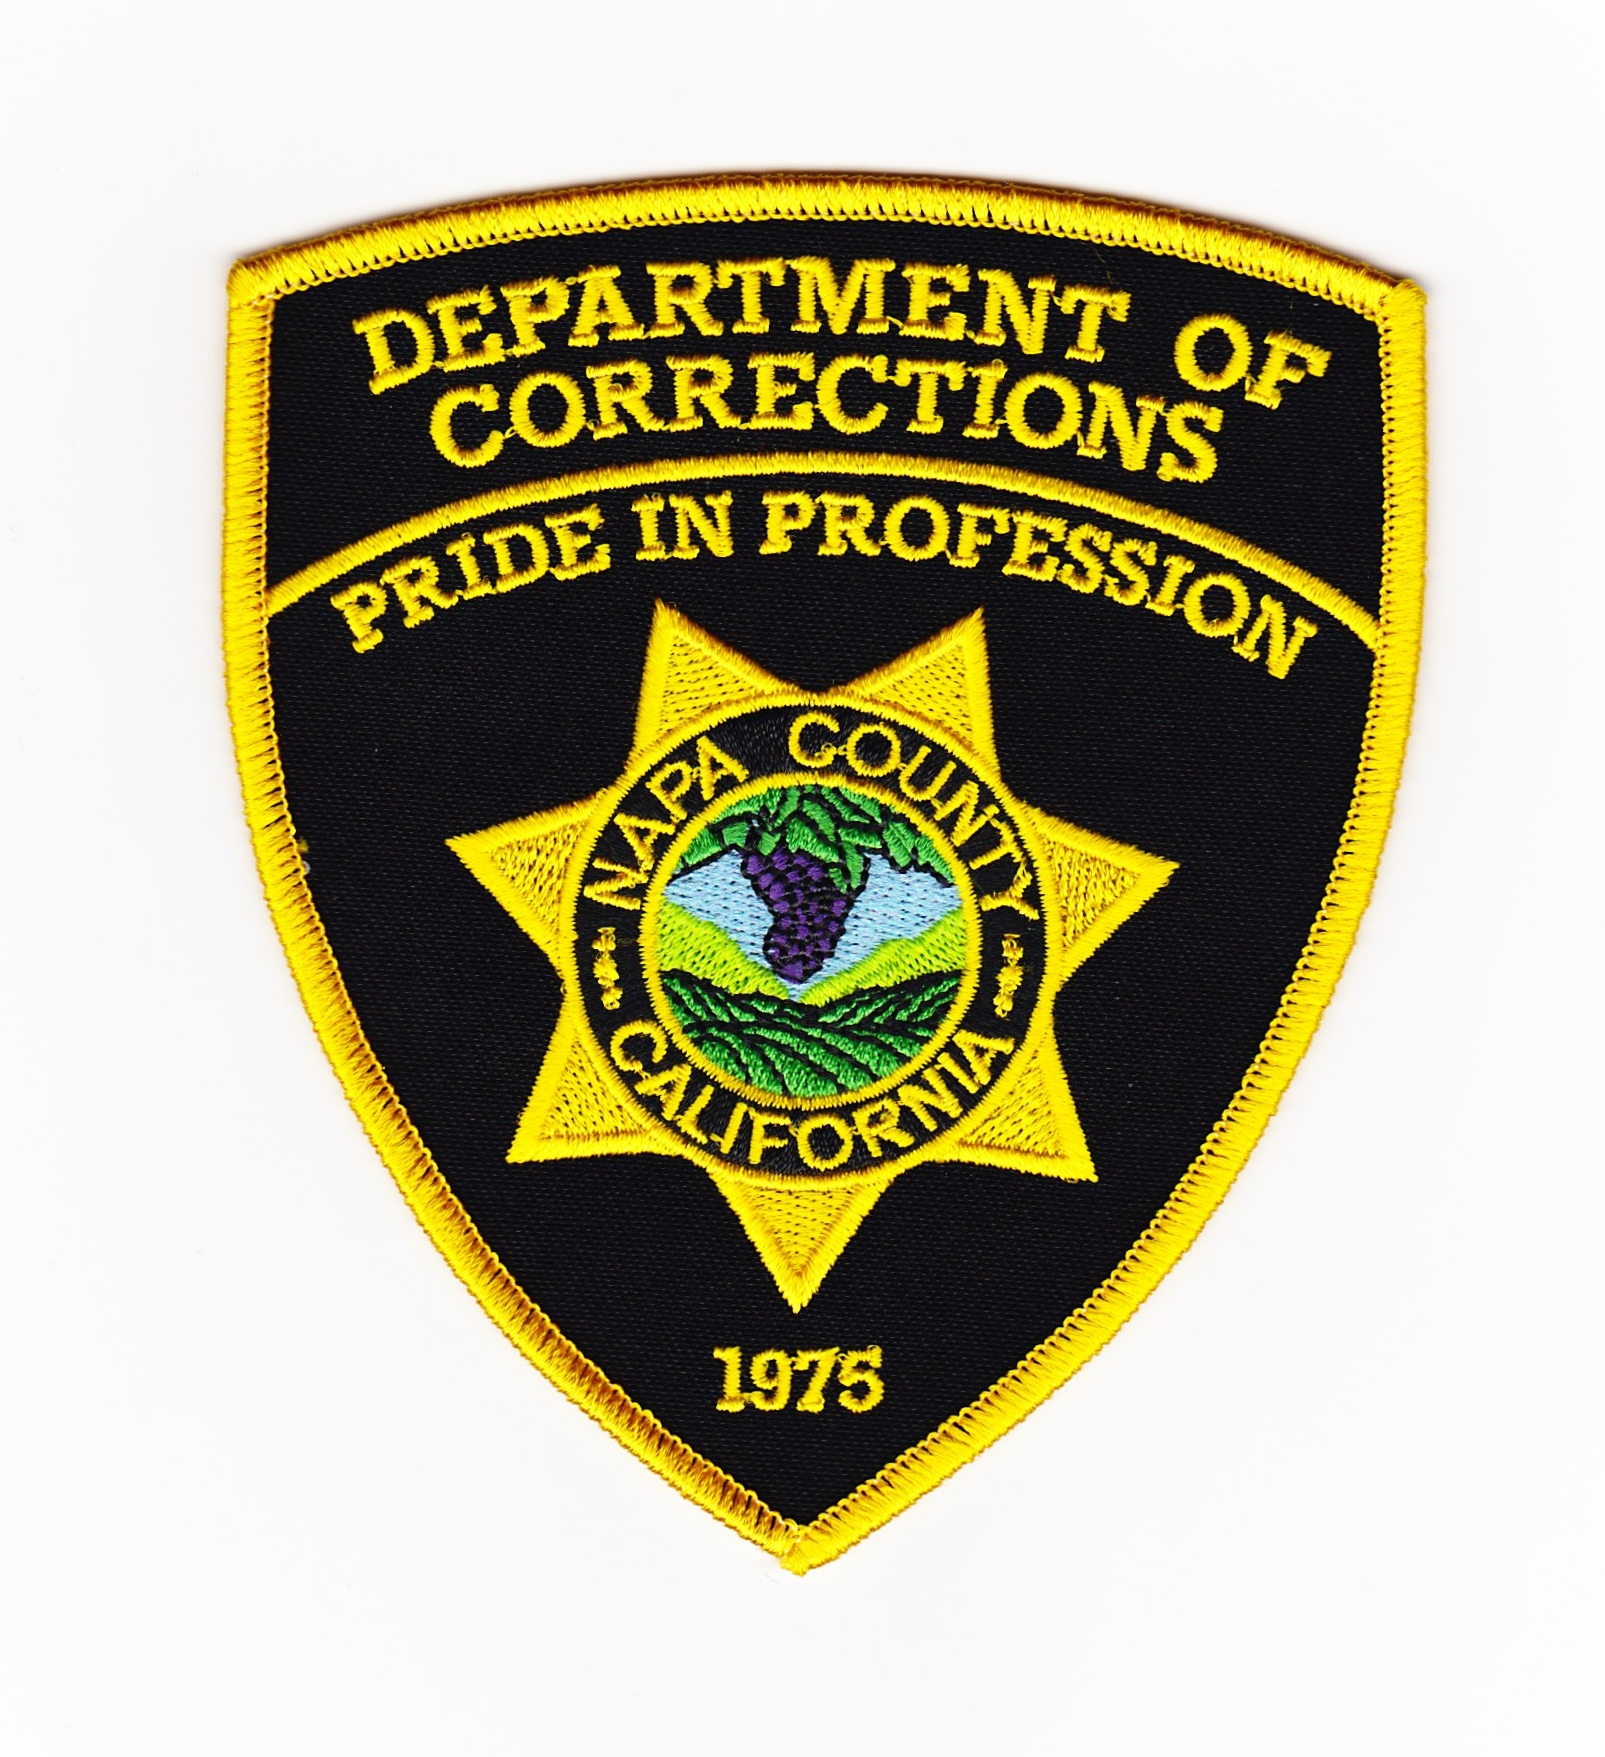 Wisconsin department of corrections release form : Mouna poratam